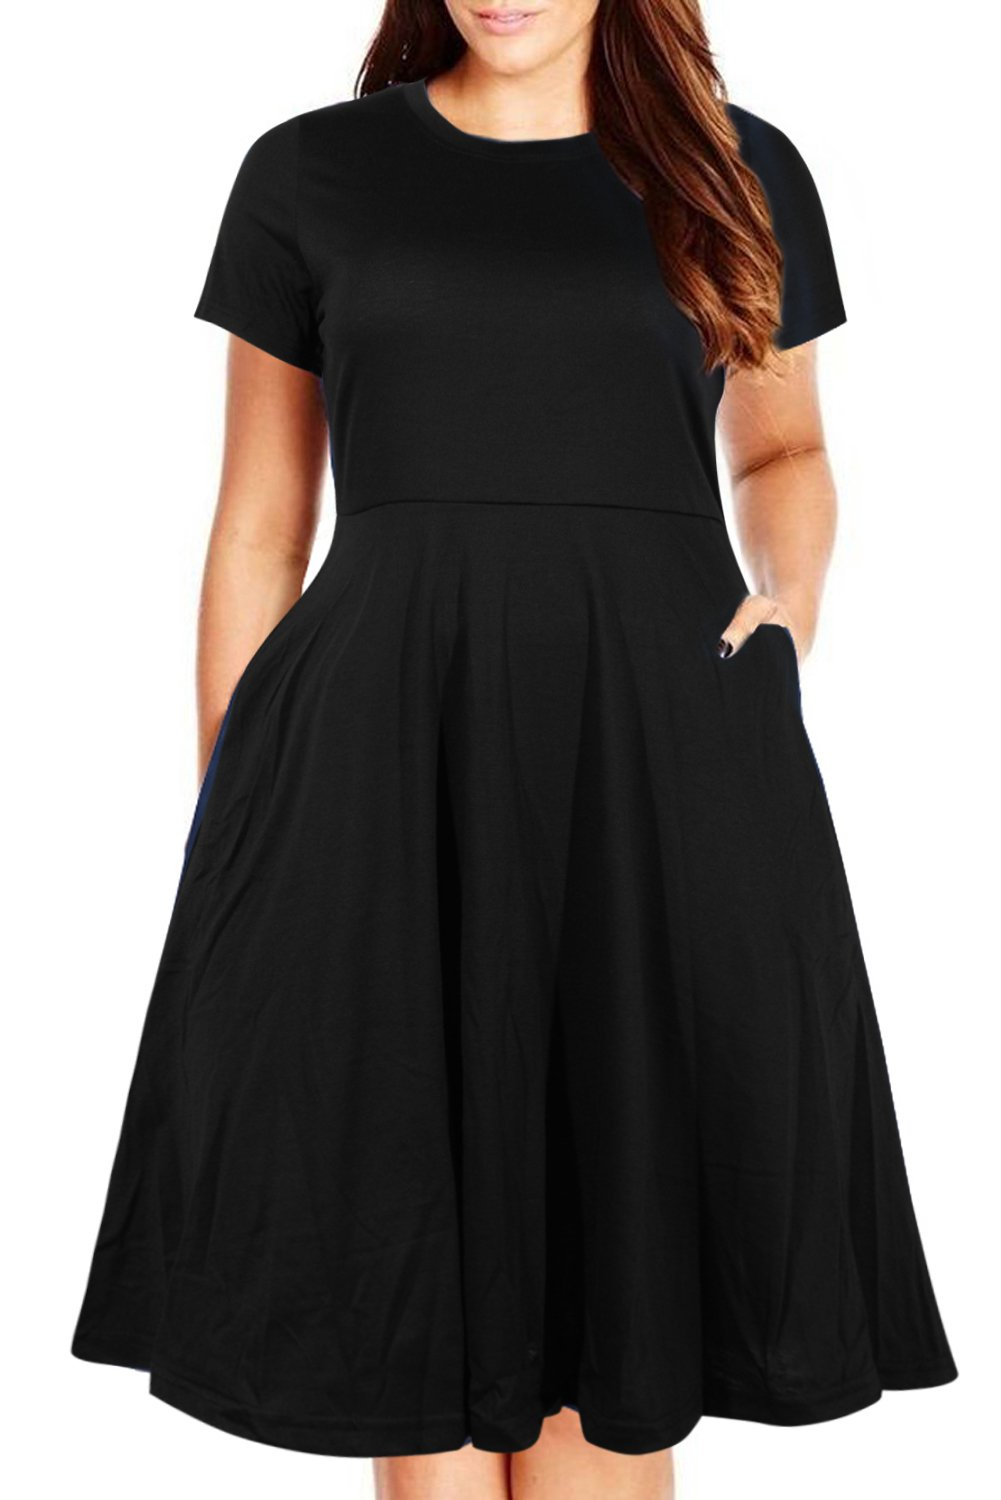 Nemidor Women's Round Neck Summer Casual Plus Size Fit and Flare Midi Dress with Pocket (Black, 16W)